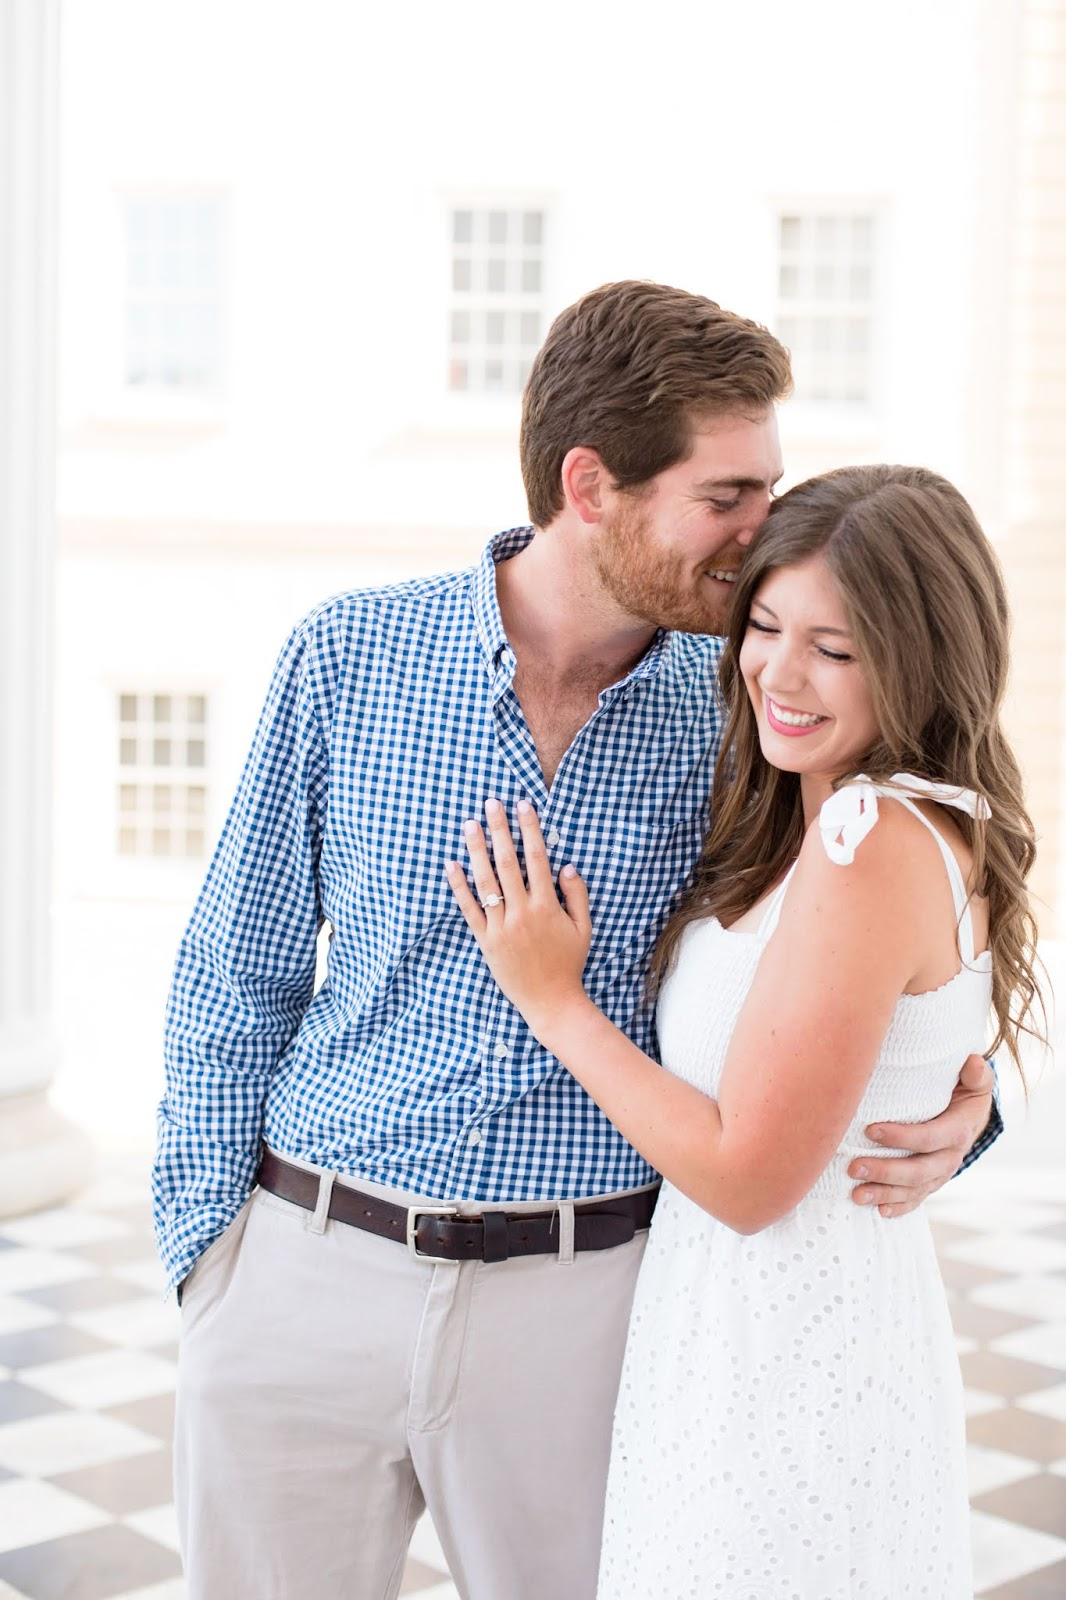 Downtown Charleston, SC Engagement Photoshoot - Chasing Cinderella